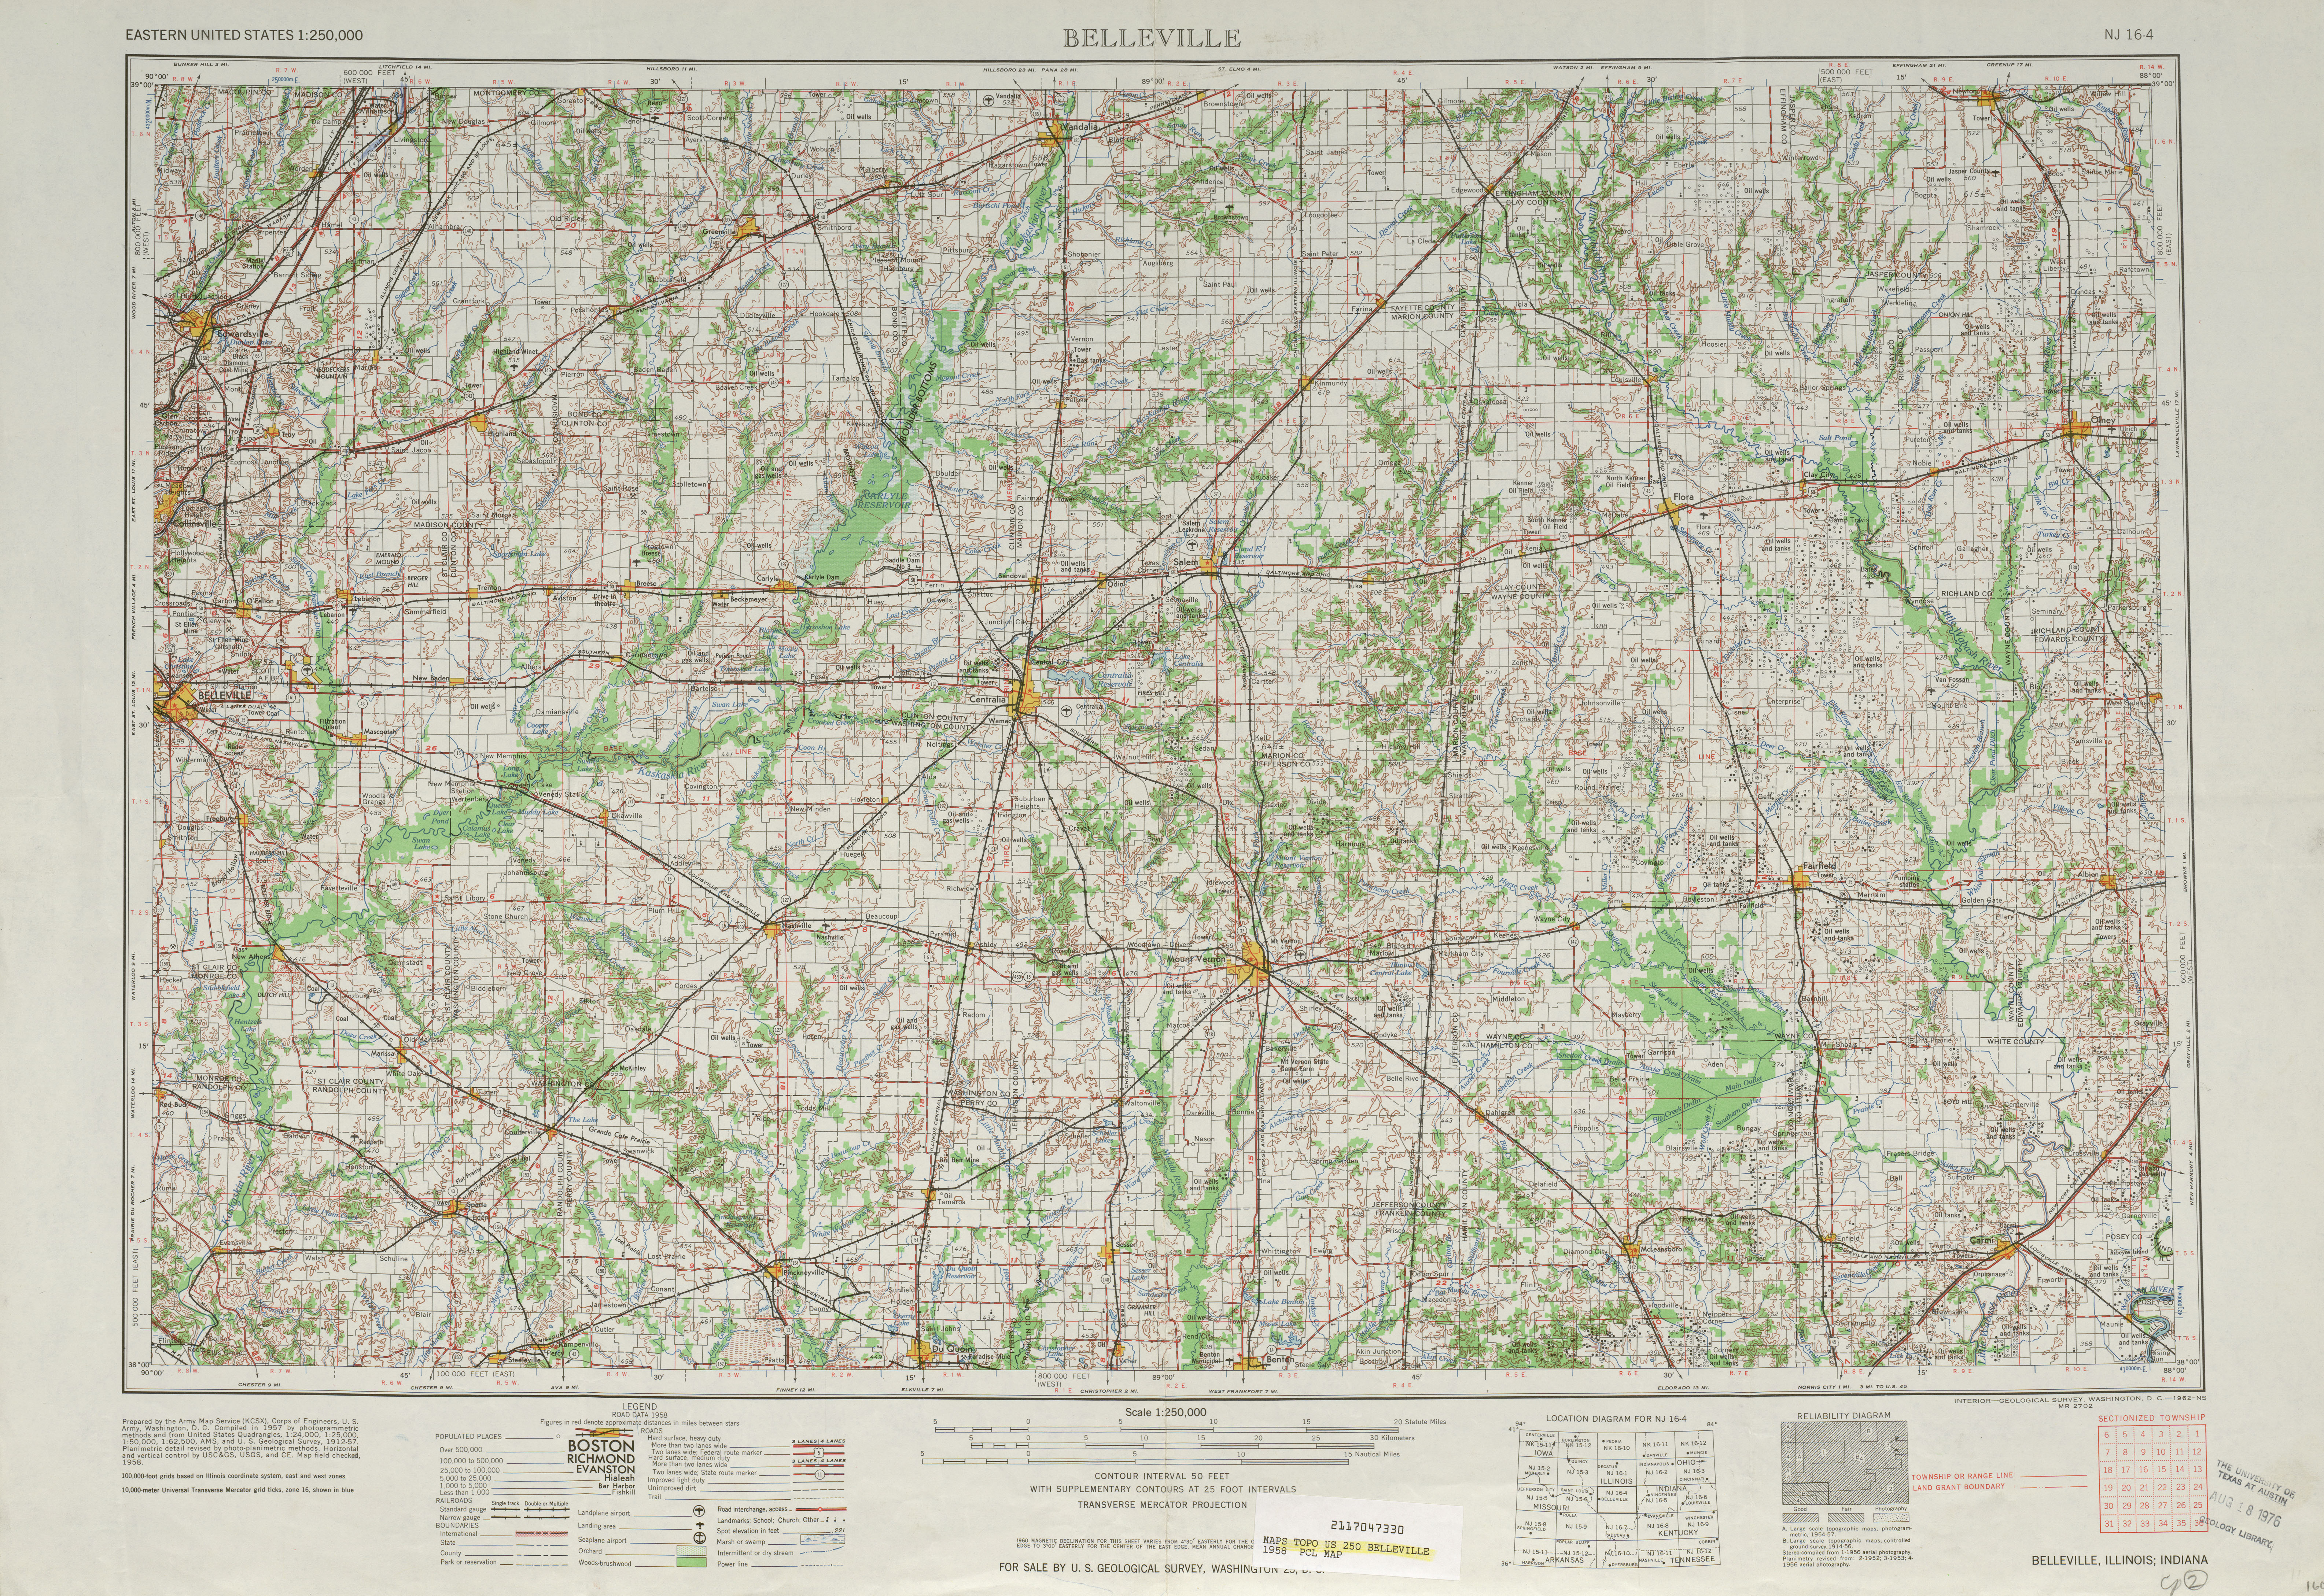 Belleville Topographic Map Sheet, United States 1958